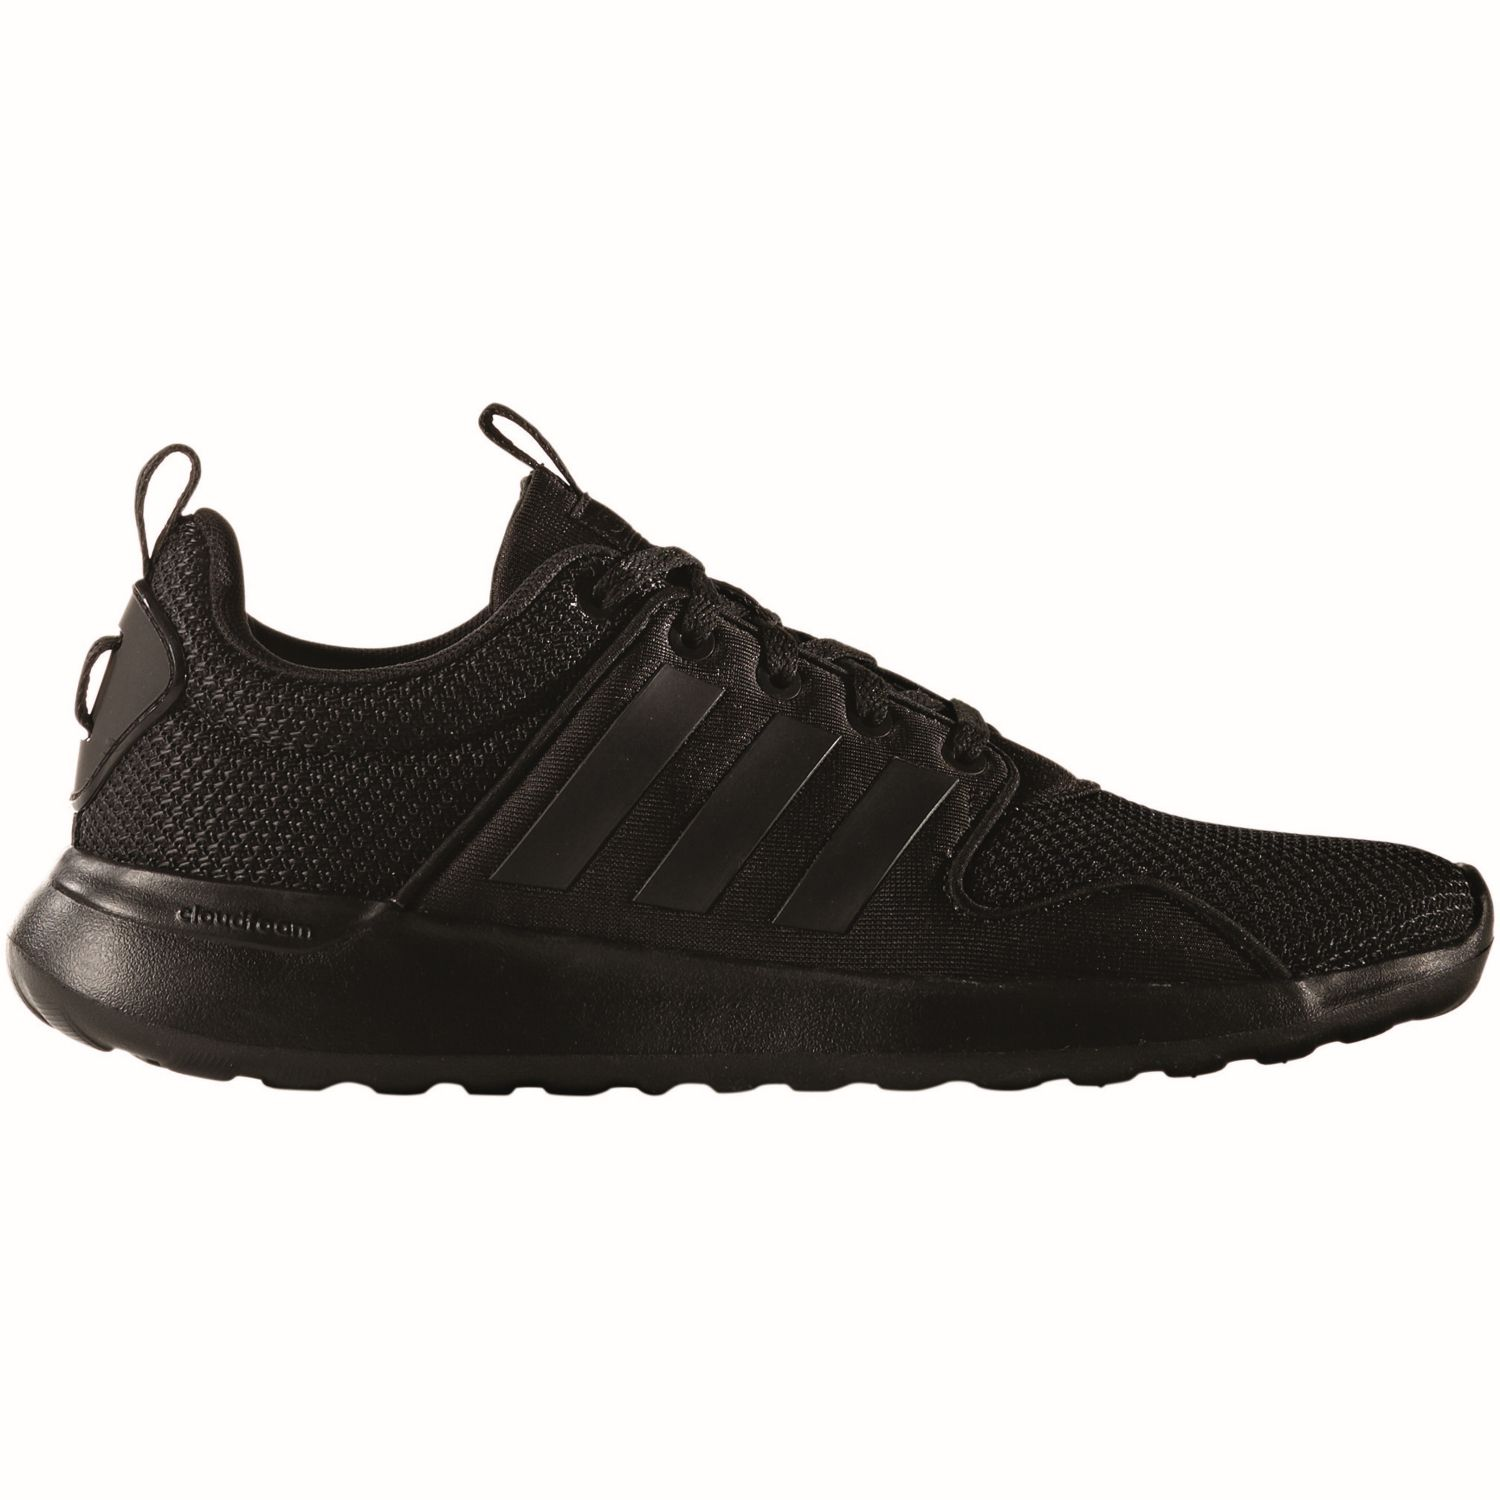 adidas neo cloudfoam racer sneaker schuh bc0020 kaufen. Black Bedroom Furniture Sets. Home Design Ideas